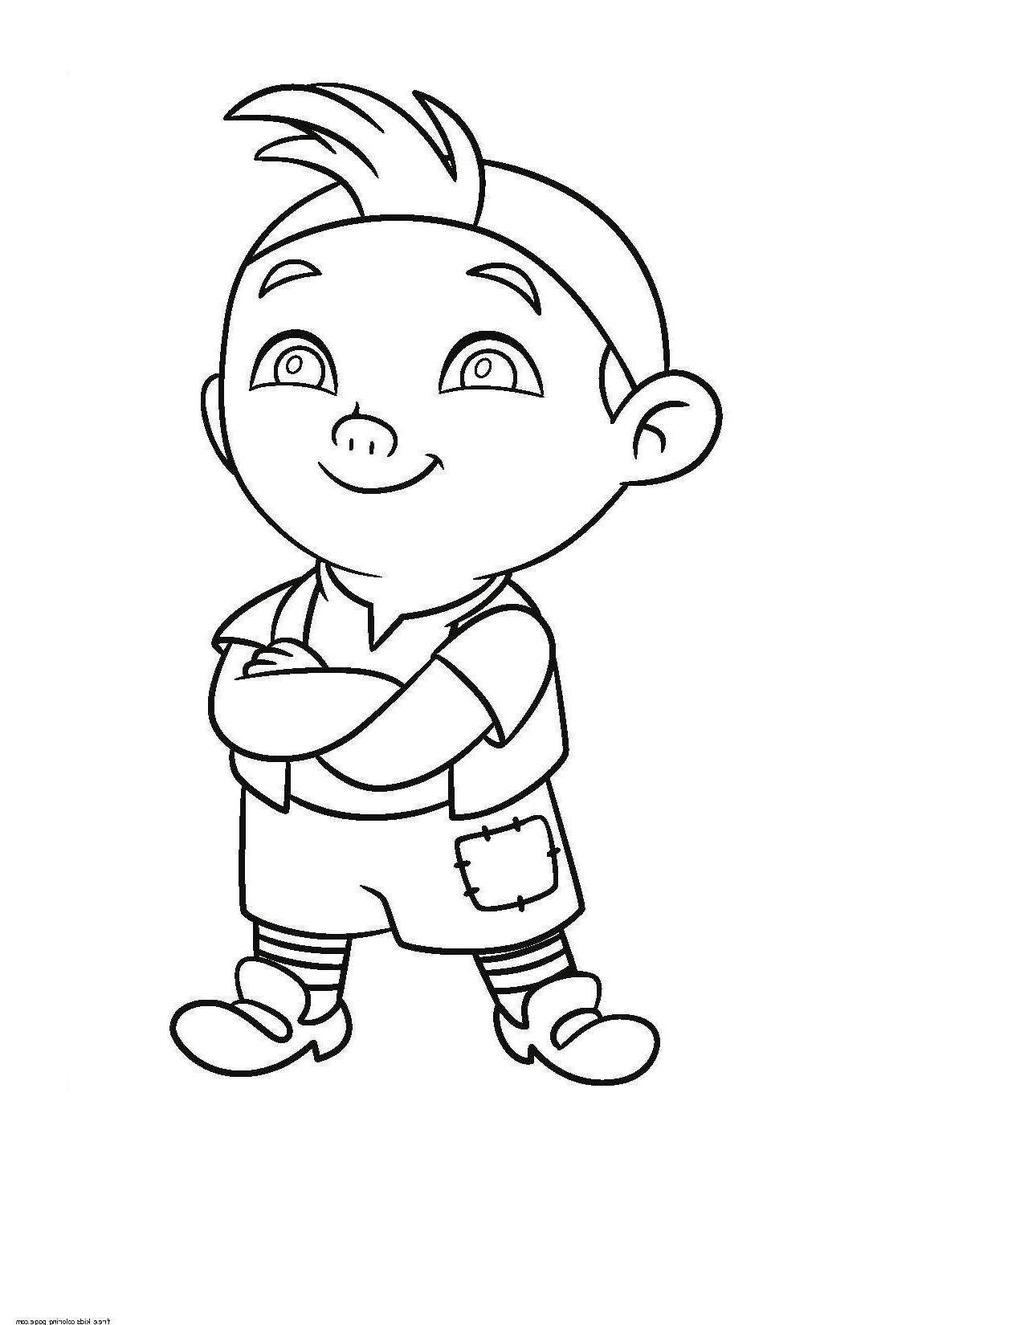 Jake And The Neverland Pirates Coloring Pages Drawing Baby Worksheet